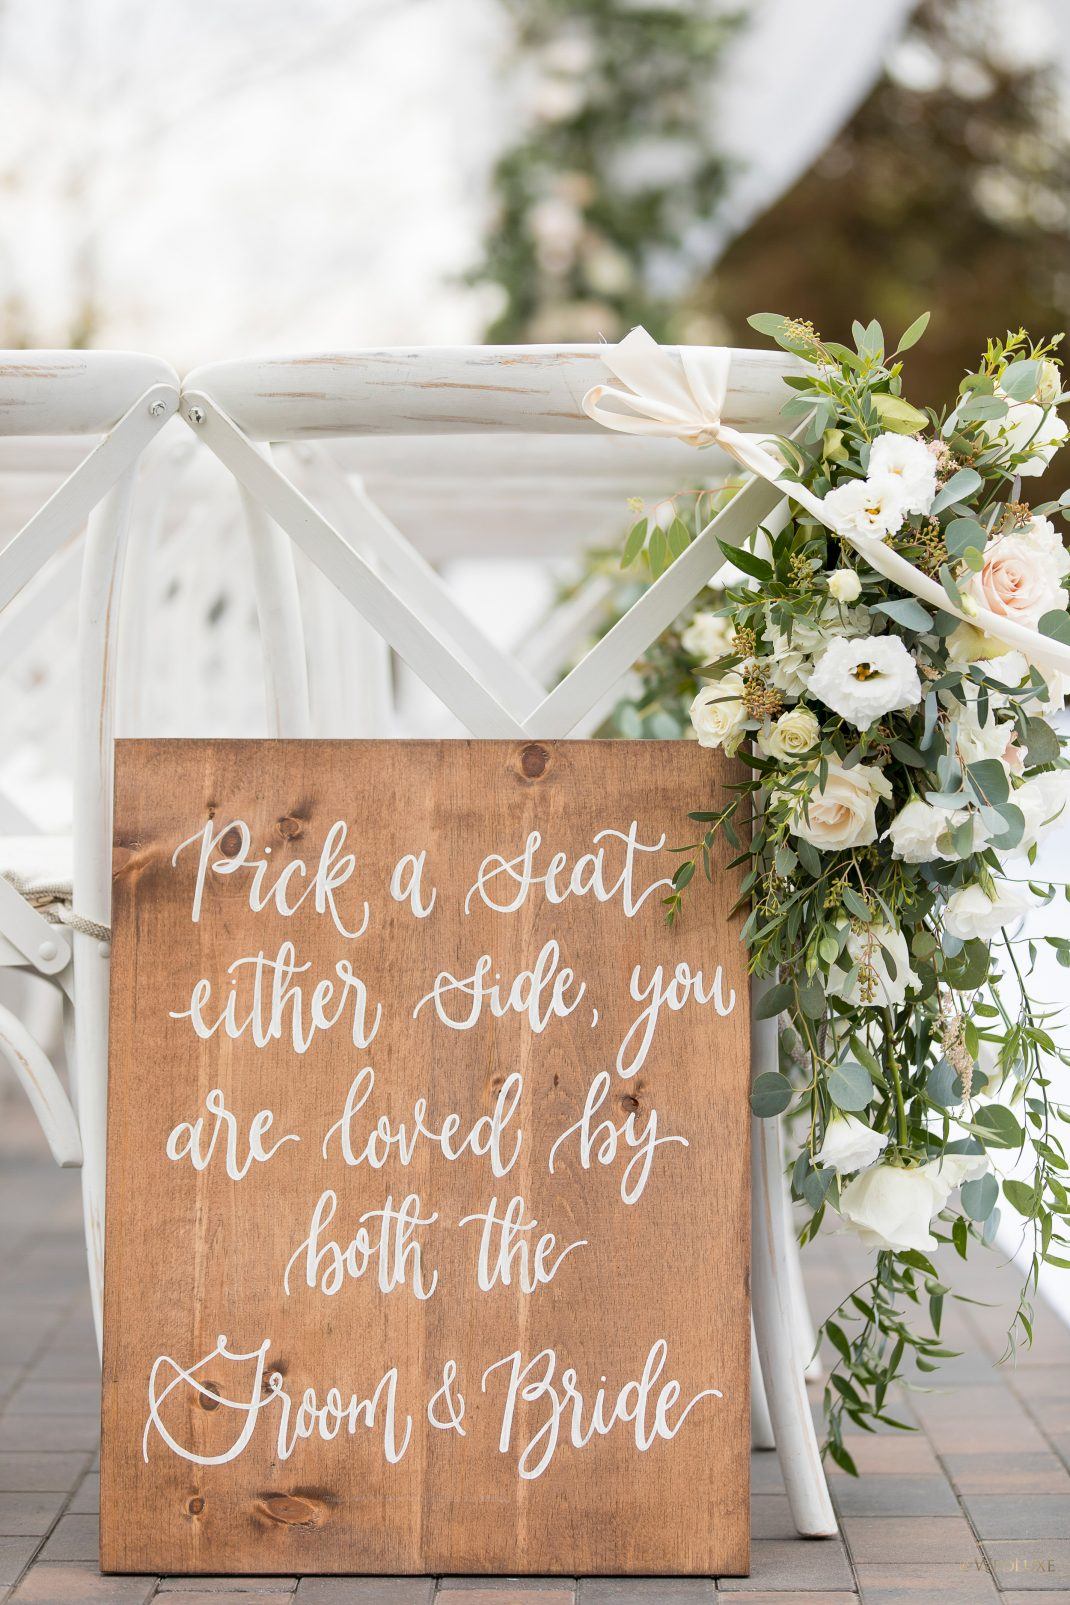 Rustic wood pick a seat sign for outdoor ceremony